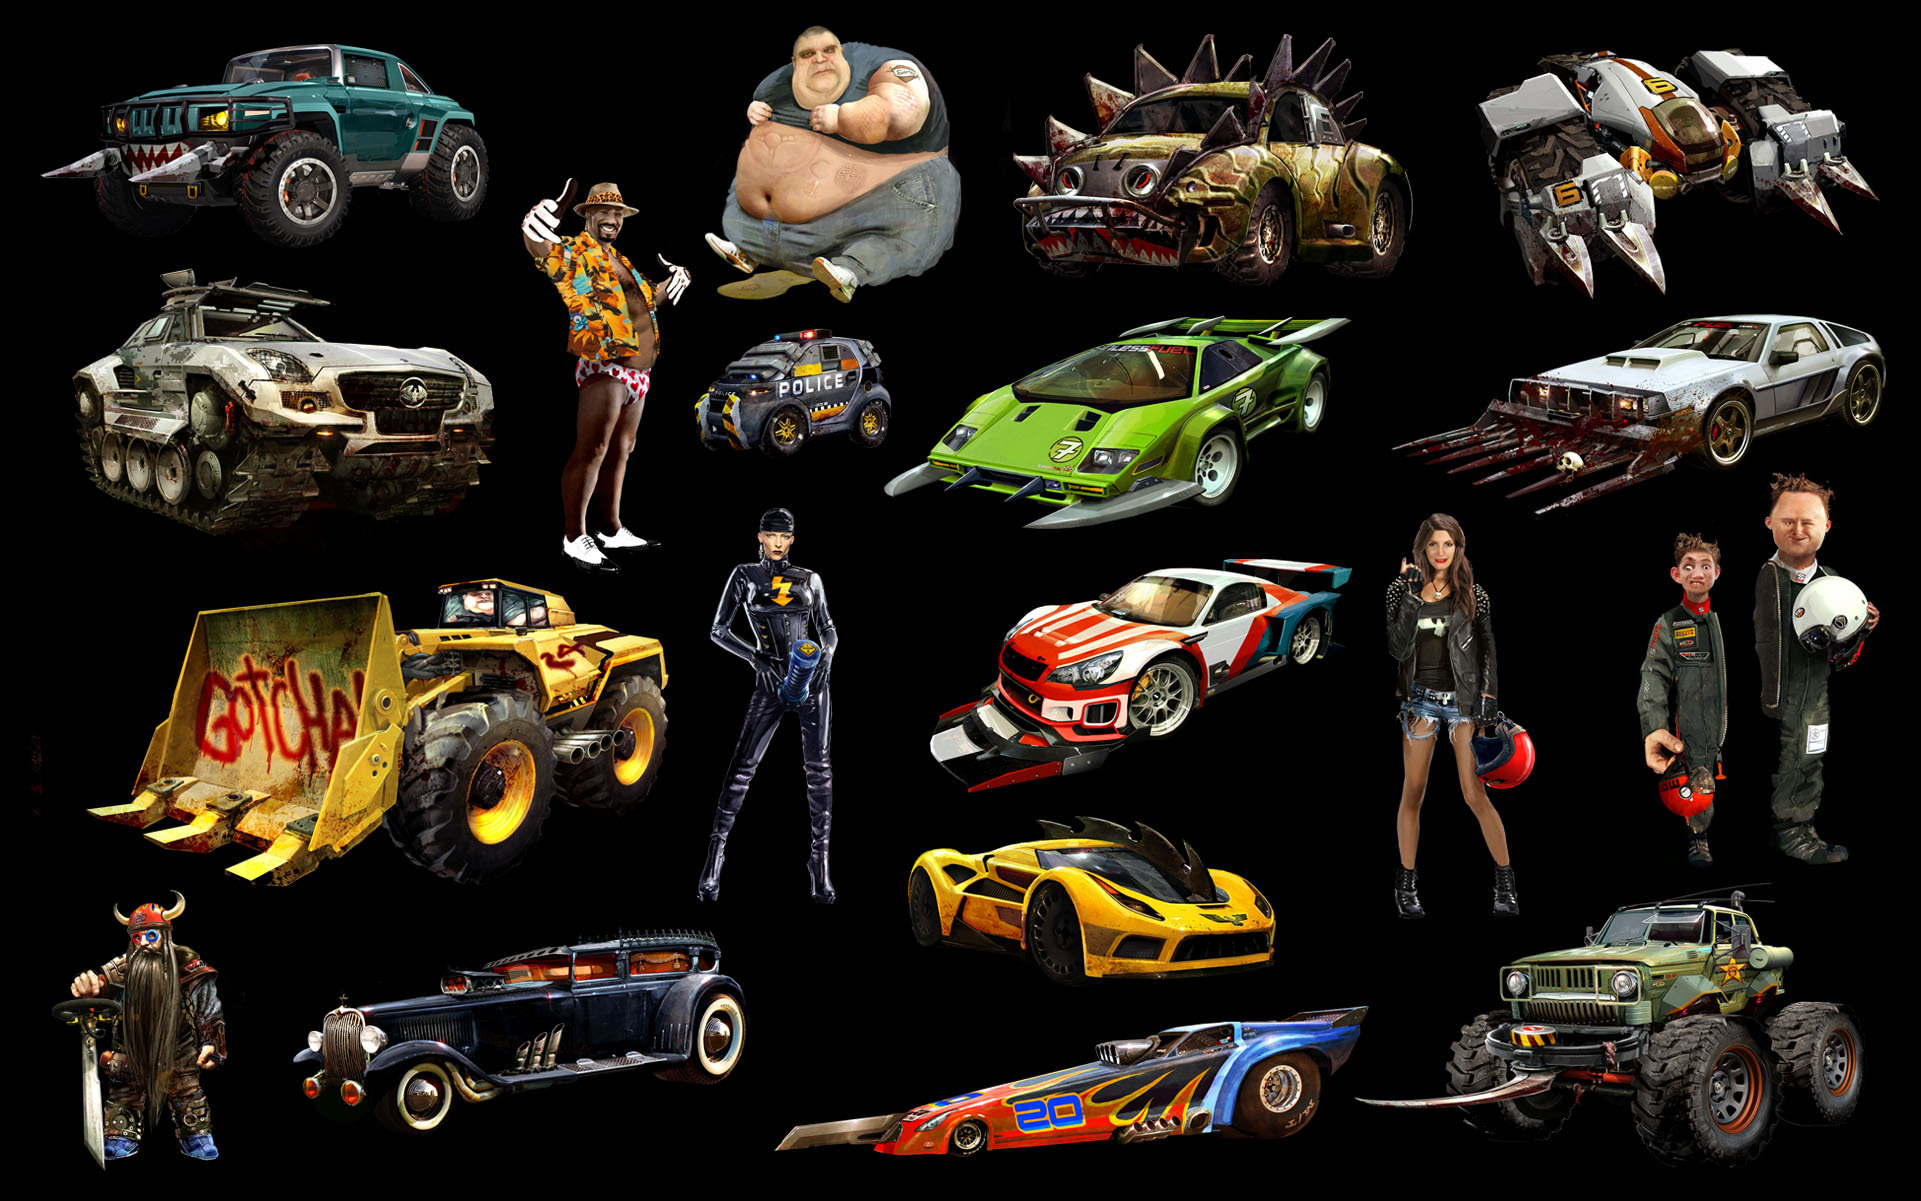 Carmageddon Reincarnation HD Wallpaper Background Image 1921x1201